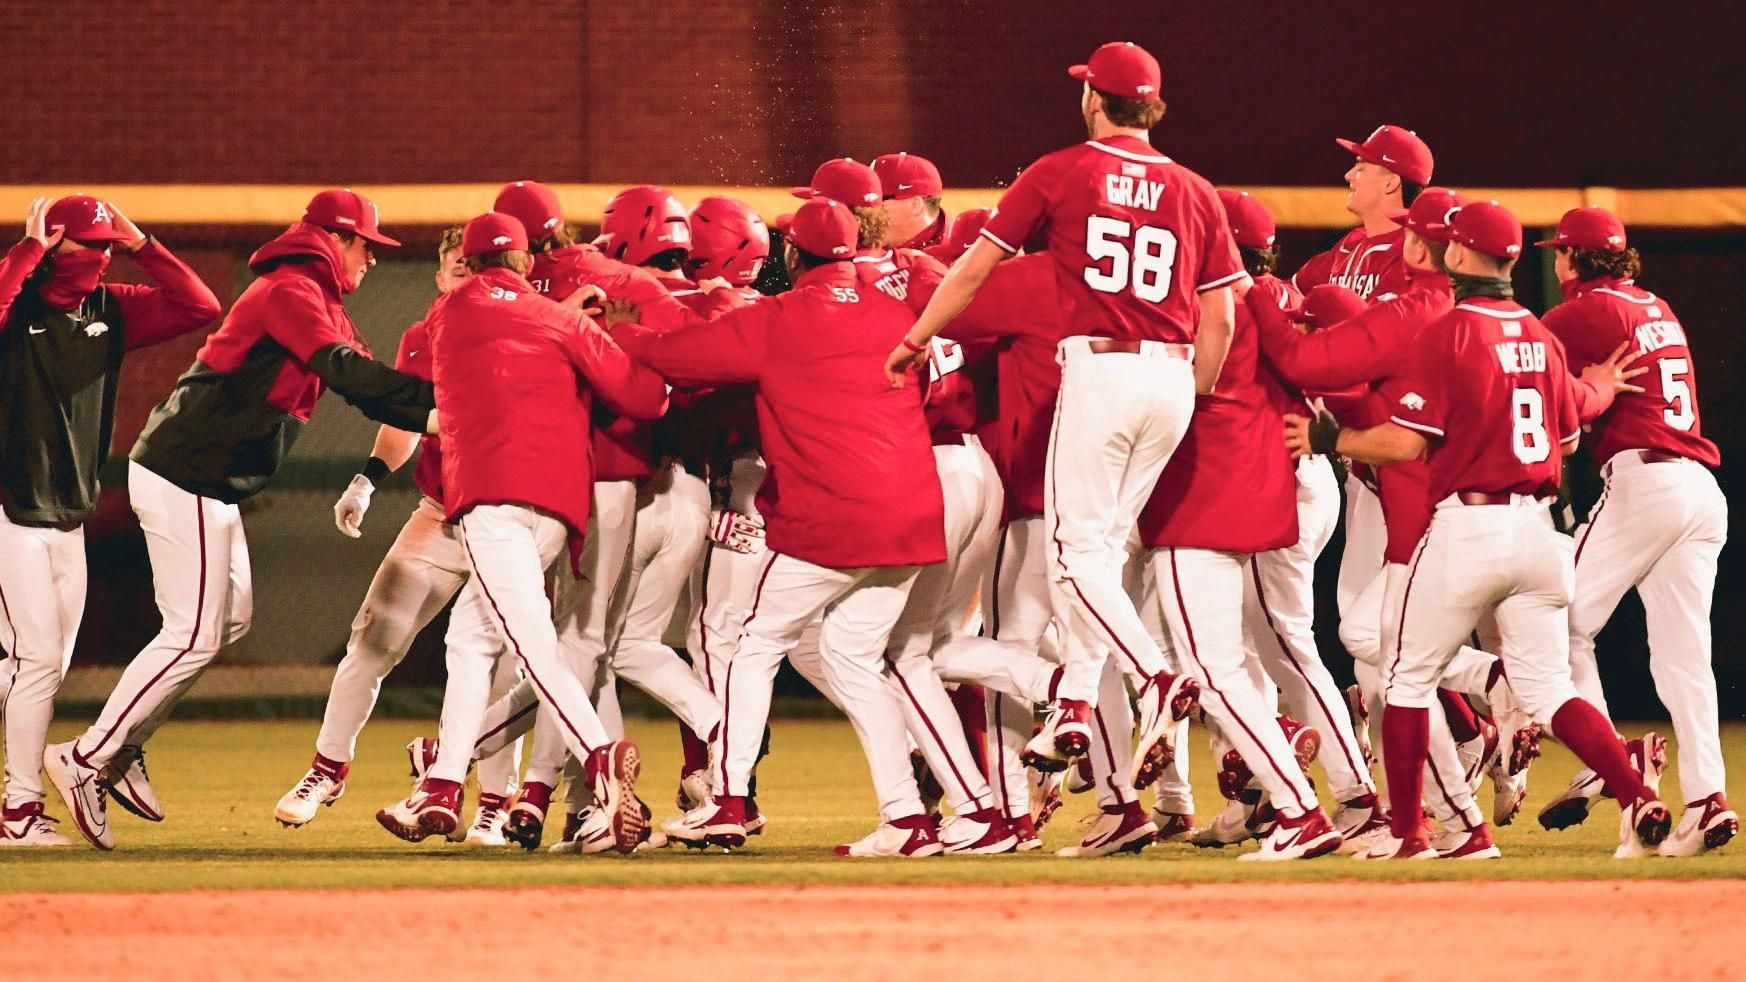 No. 2 Arkansas walk-off hit ends game in 10th inning